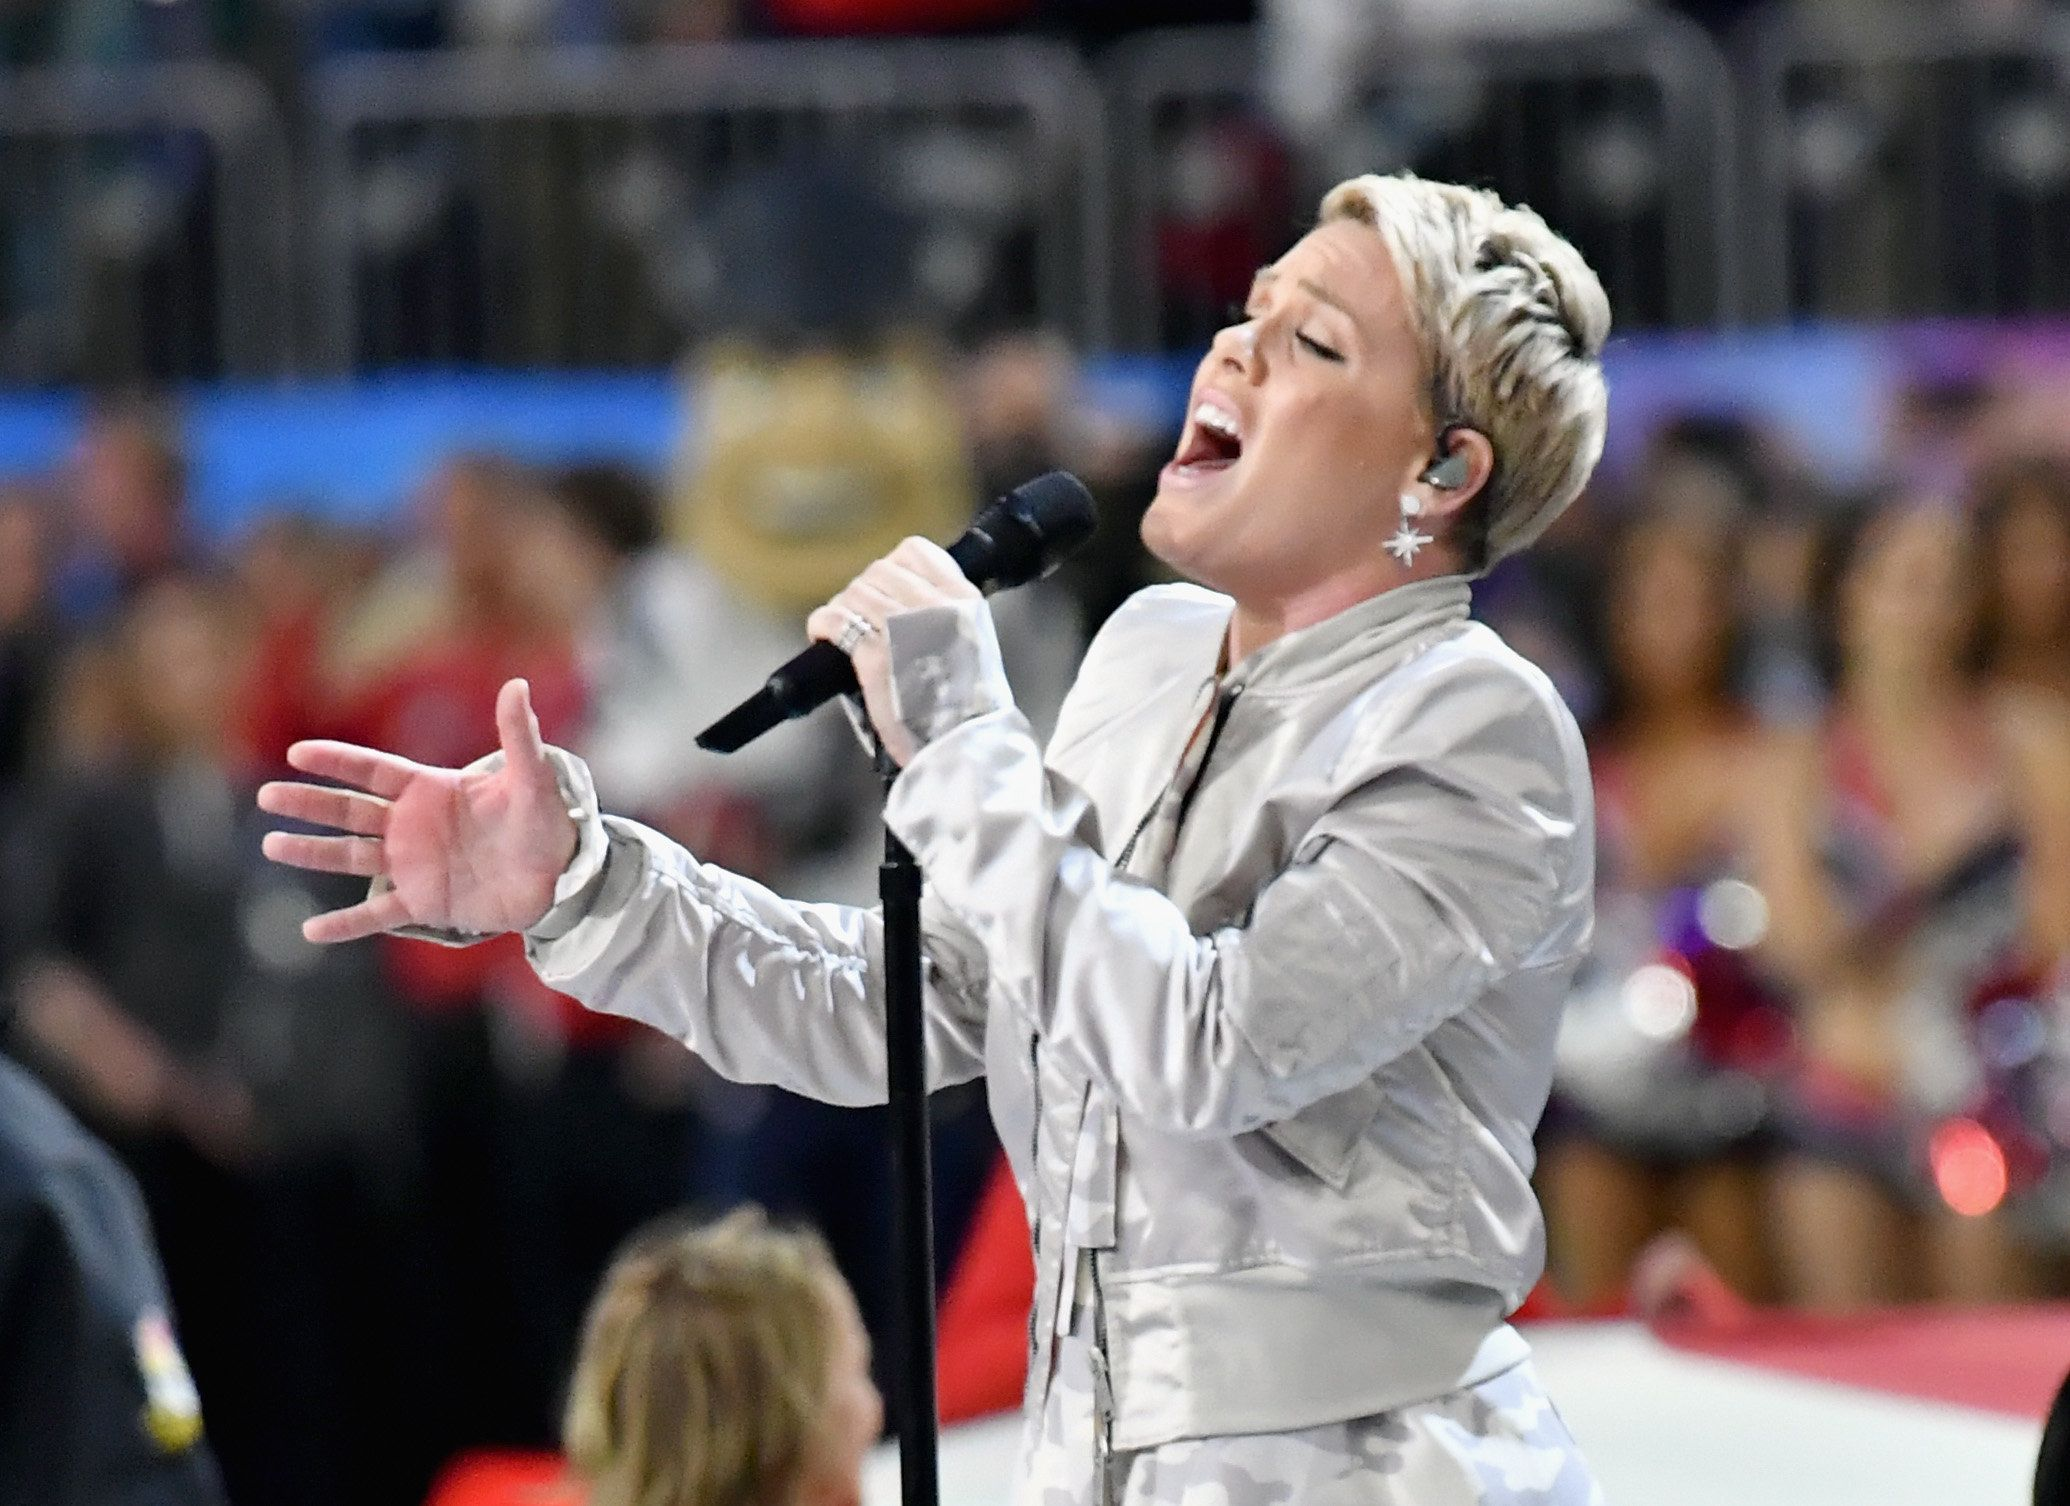 MINNEAPOLIS, MN - FEBRUARY 04:  Recording artist Pink performs the National Anthem during the Super Bowl LII Pregame show at U.S. Bank Stadium on February 4, 2018 in Minneapolis, Minnesota.  (Photo by Jeff Kravitz/FilmMagic)